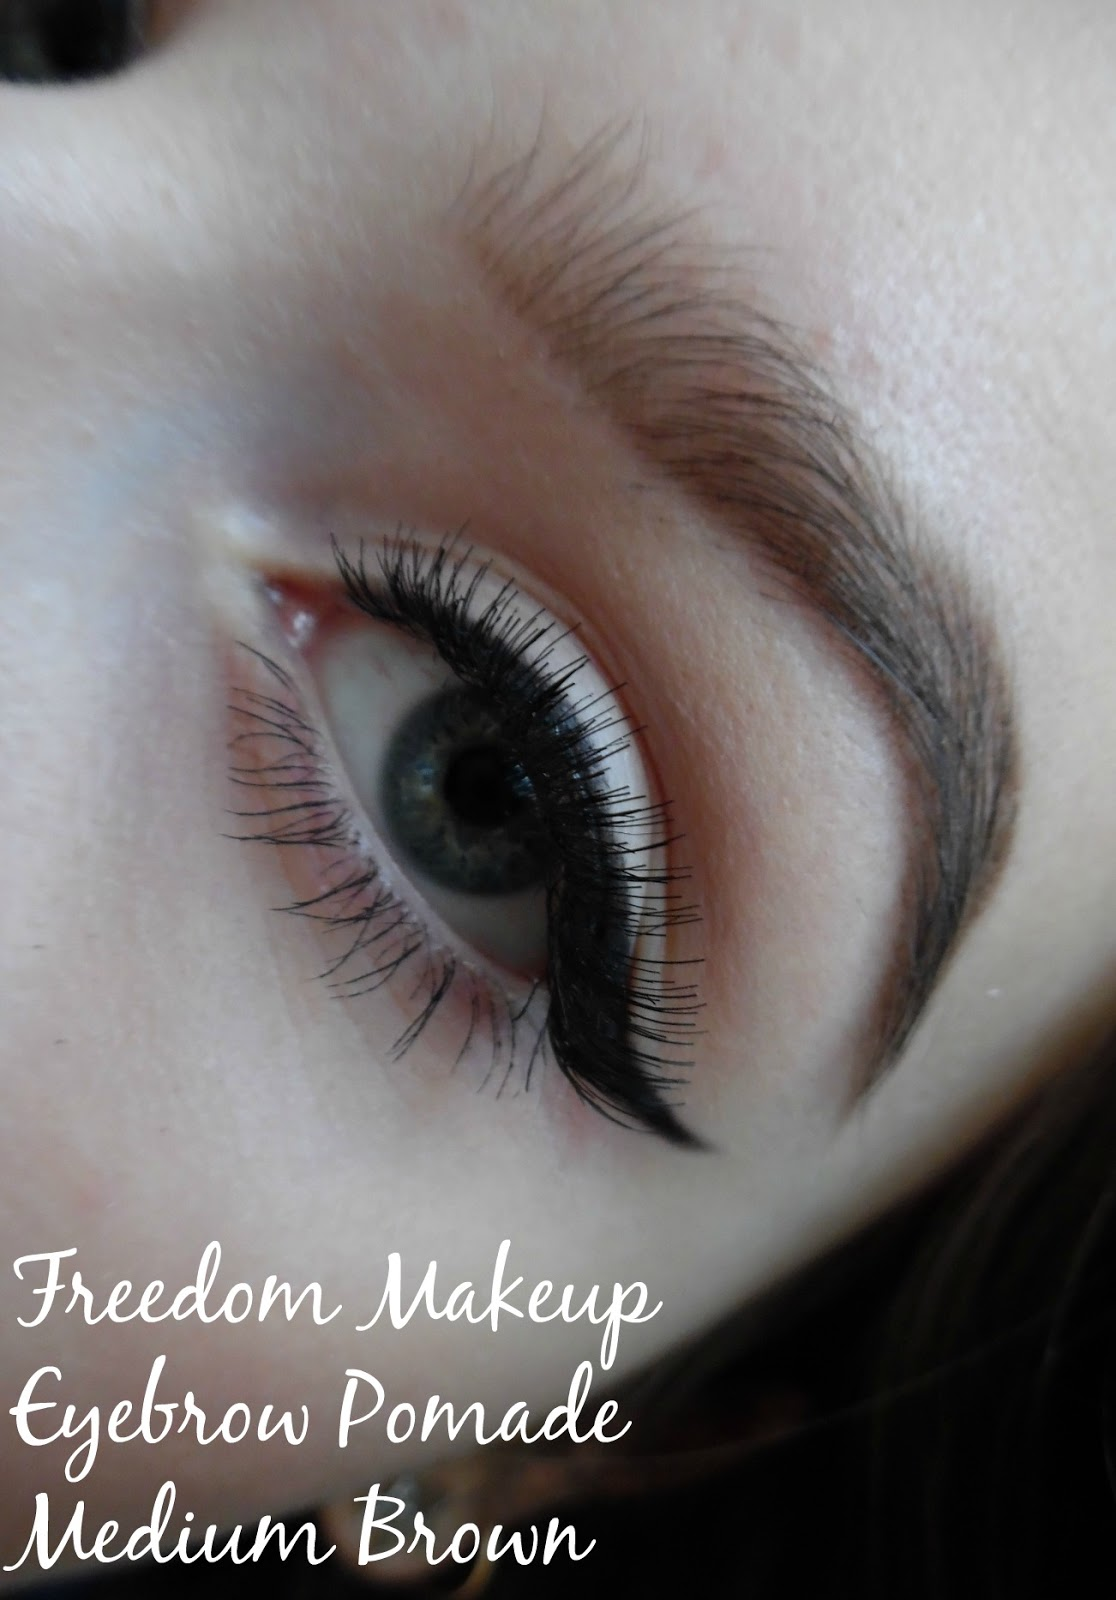 Freedommakeup Eyebrow Pomade In Soft Brown